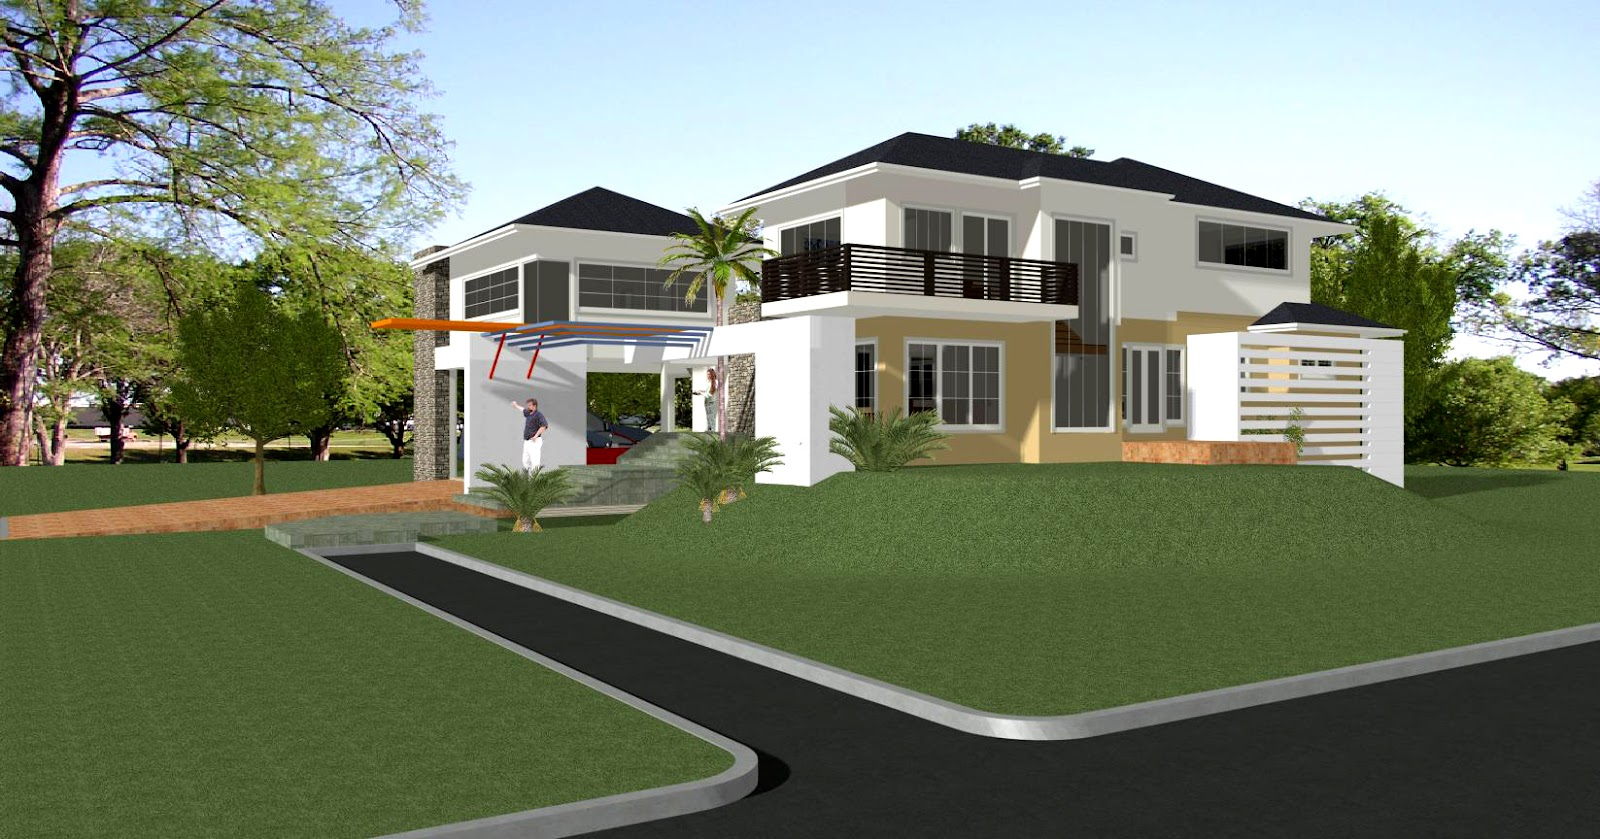 House designs in the philippines in iloilo by erecre group Best home builder websites